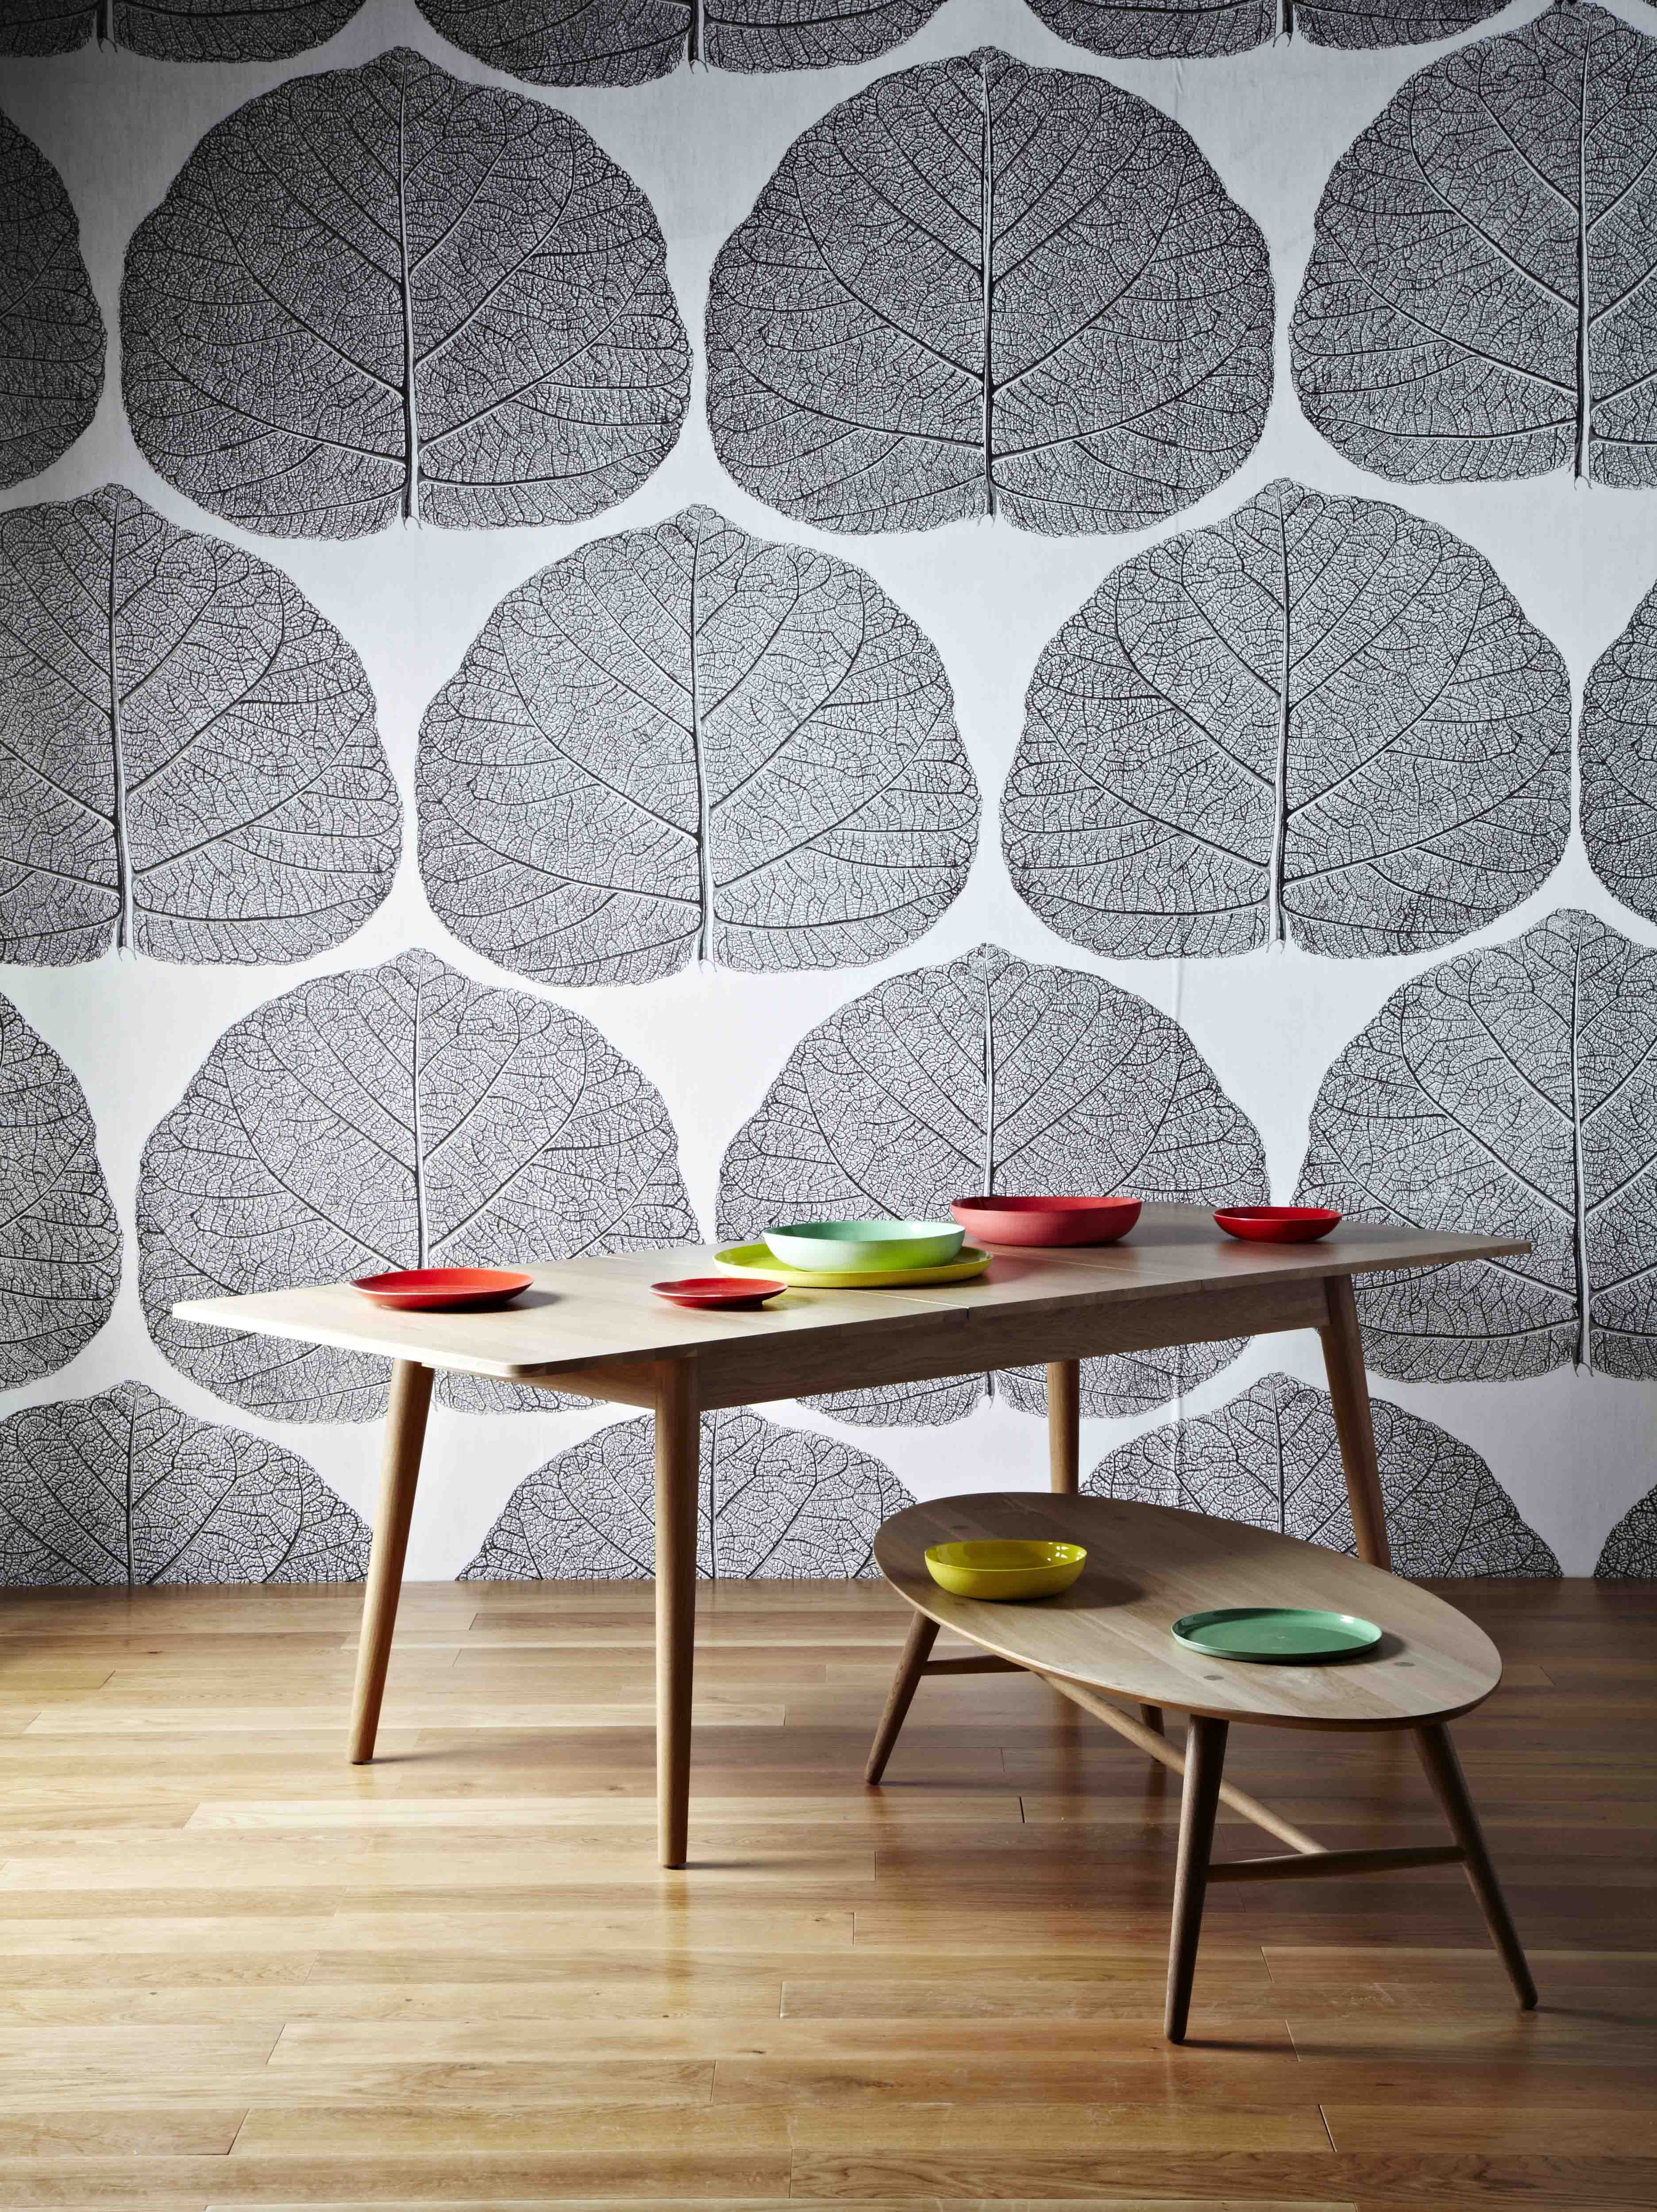 The Barton Table And Coffee Table, Designed By Terence Conran For Ercol.,  Love